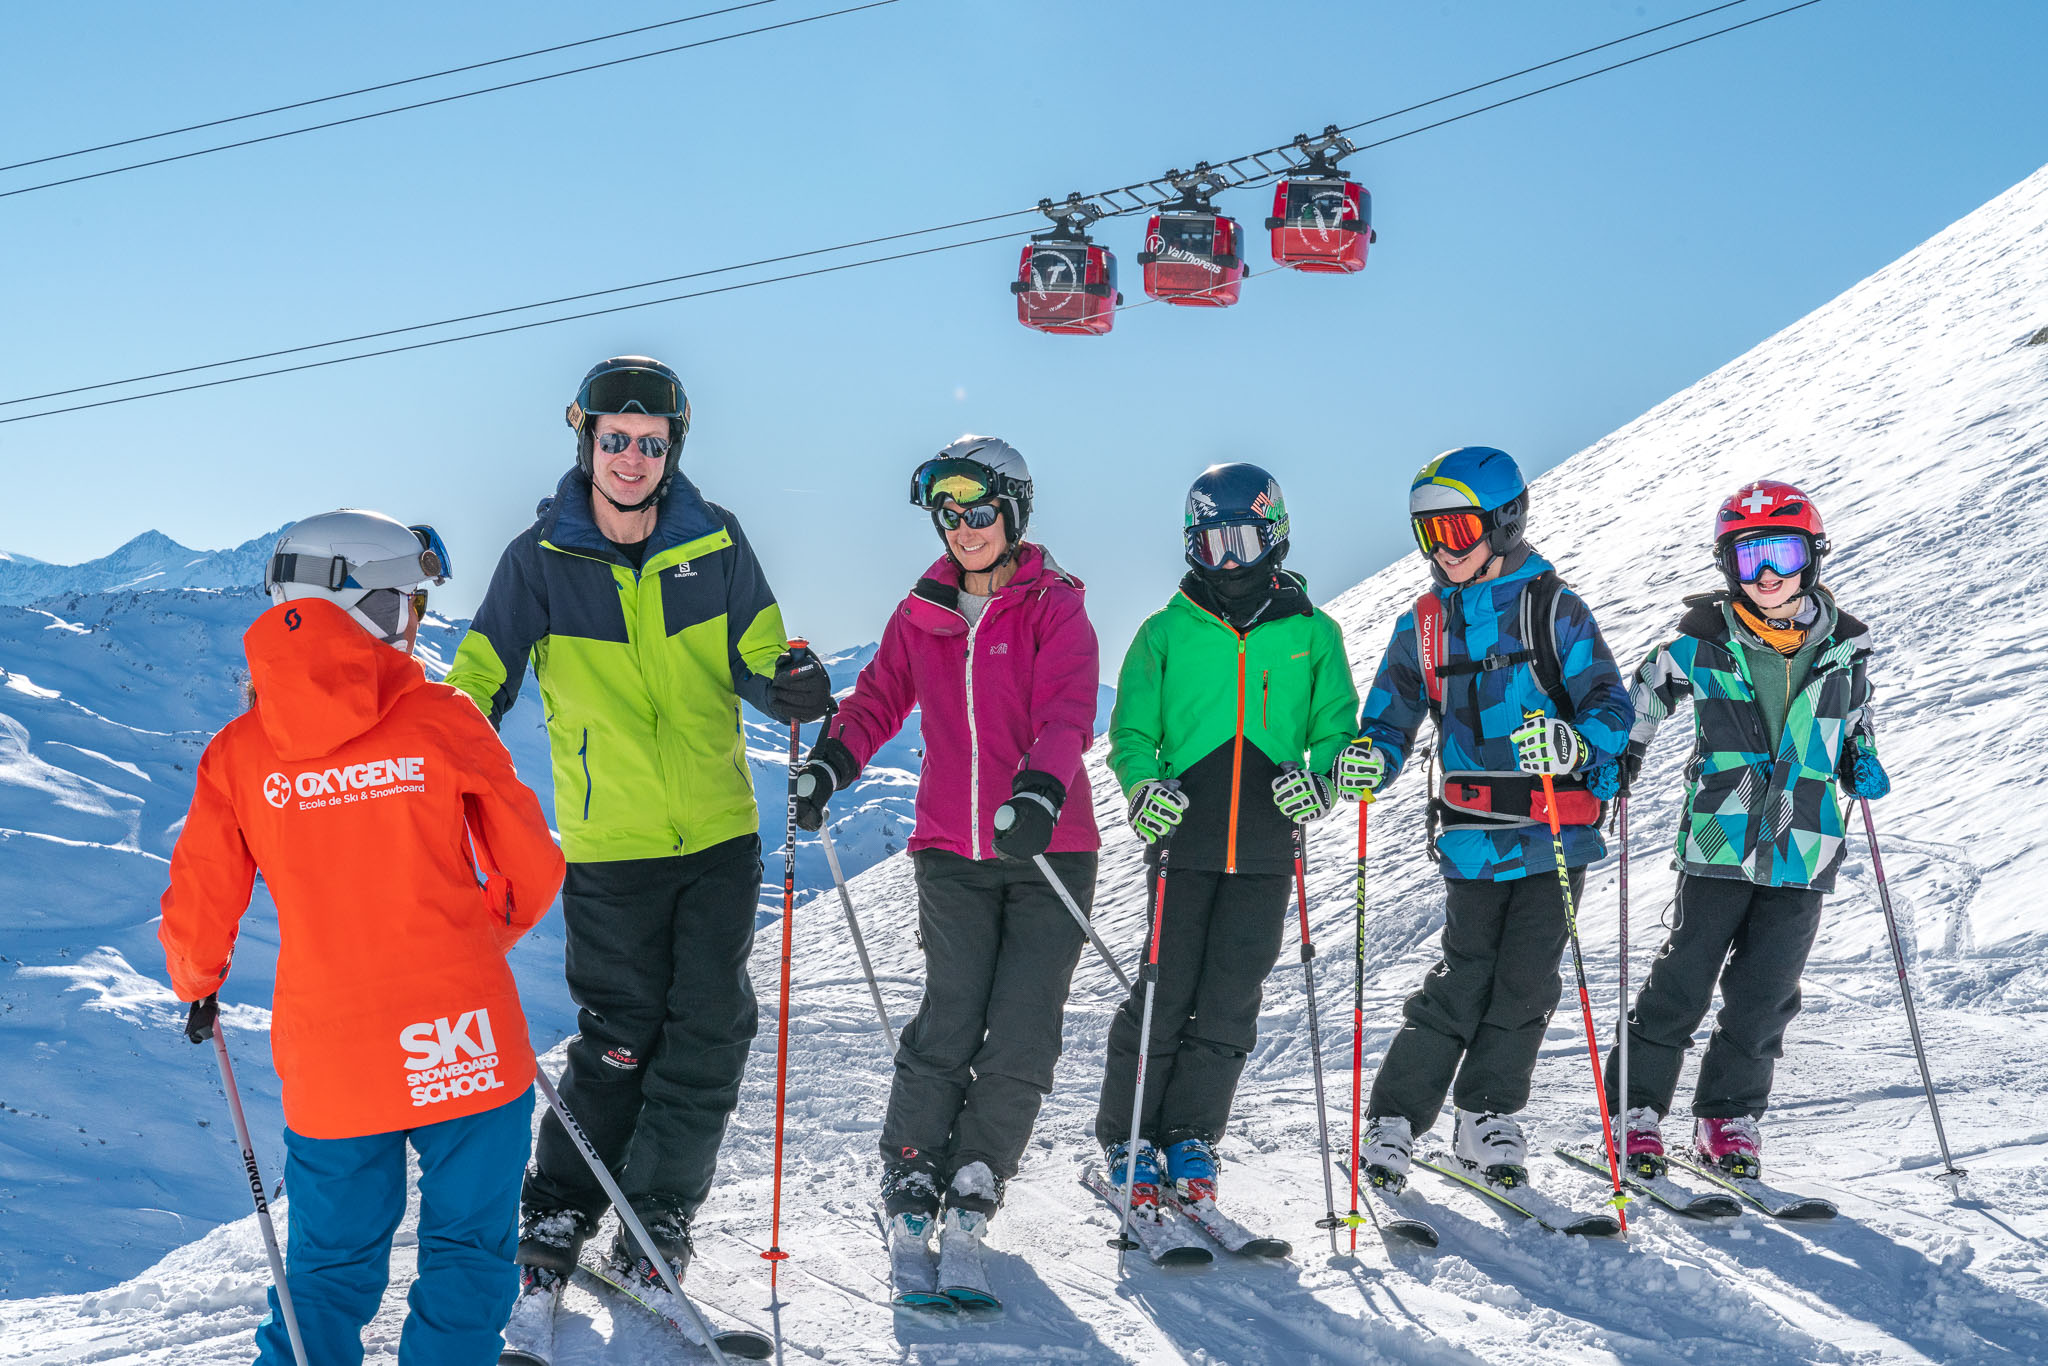 Oxygene female ski instructor in family ski lessons in Val Thorens